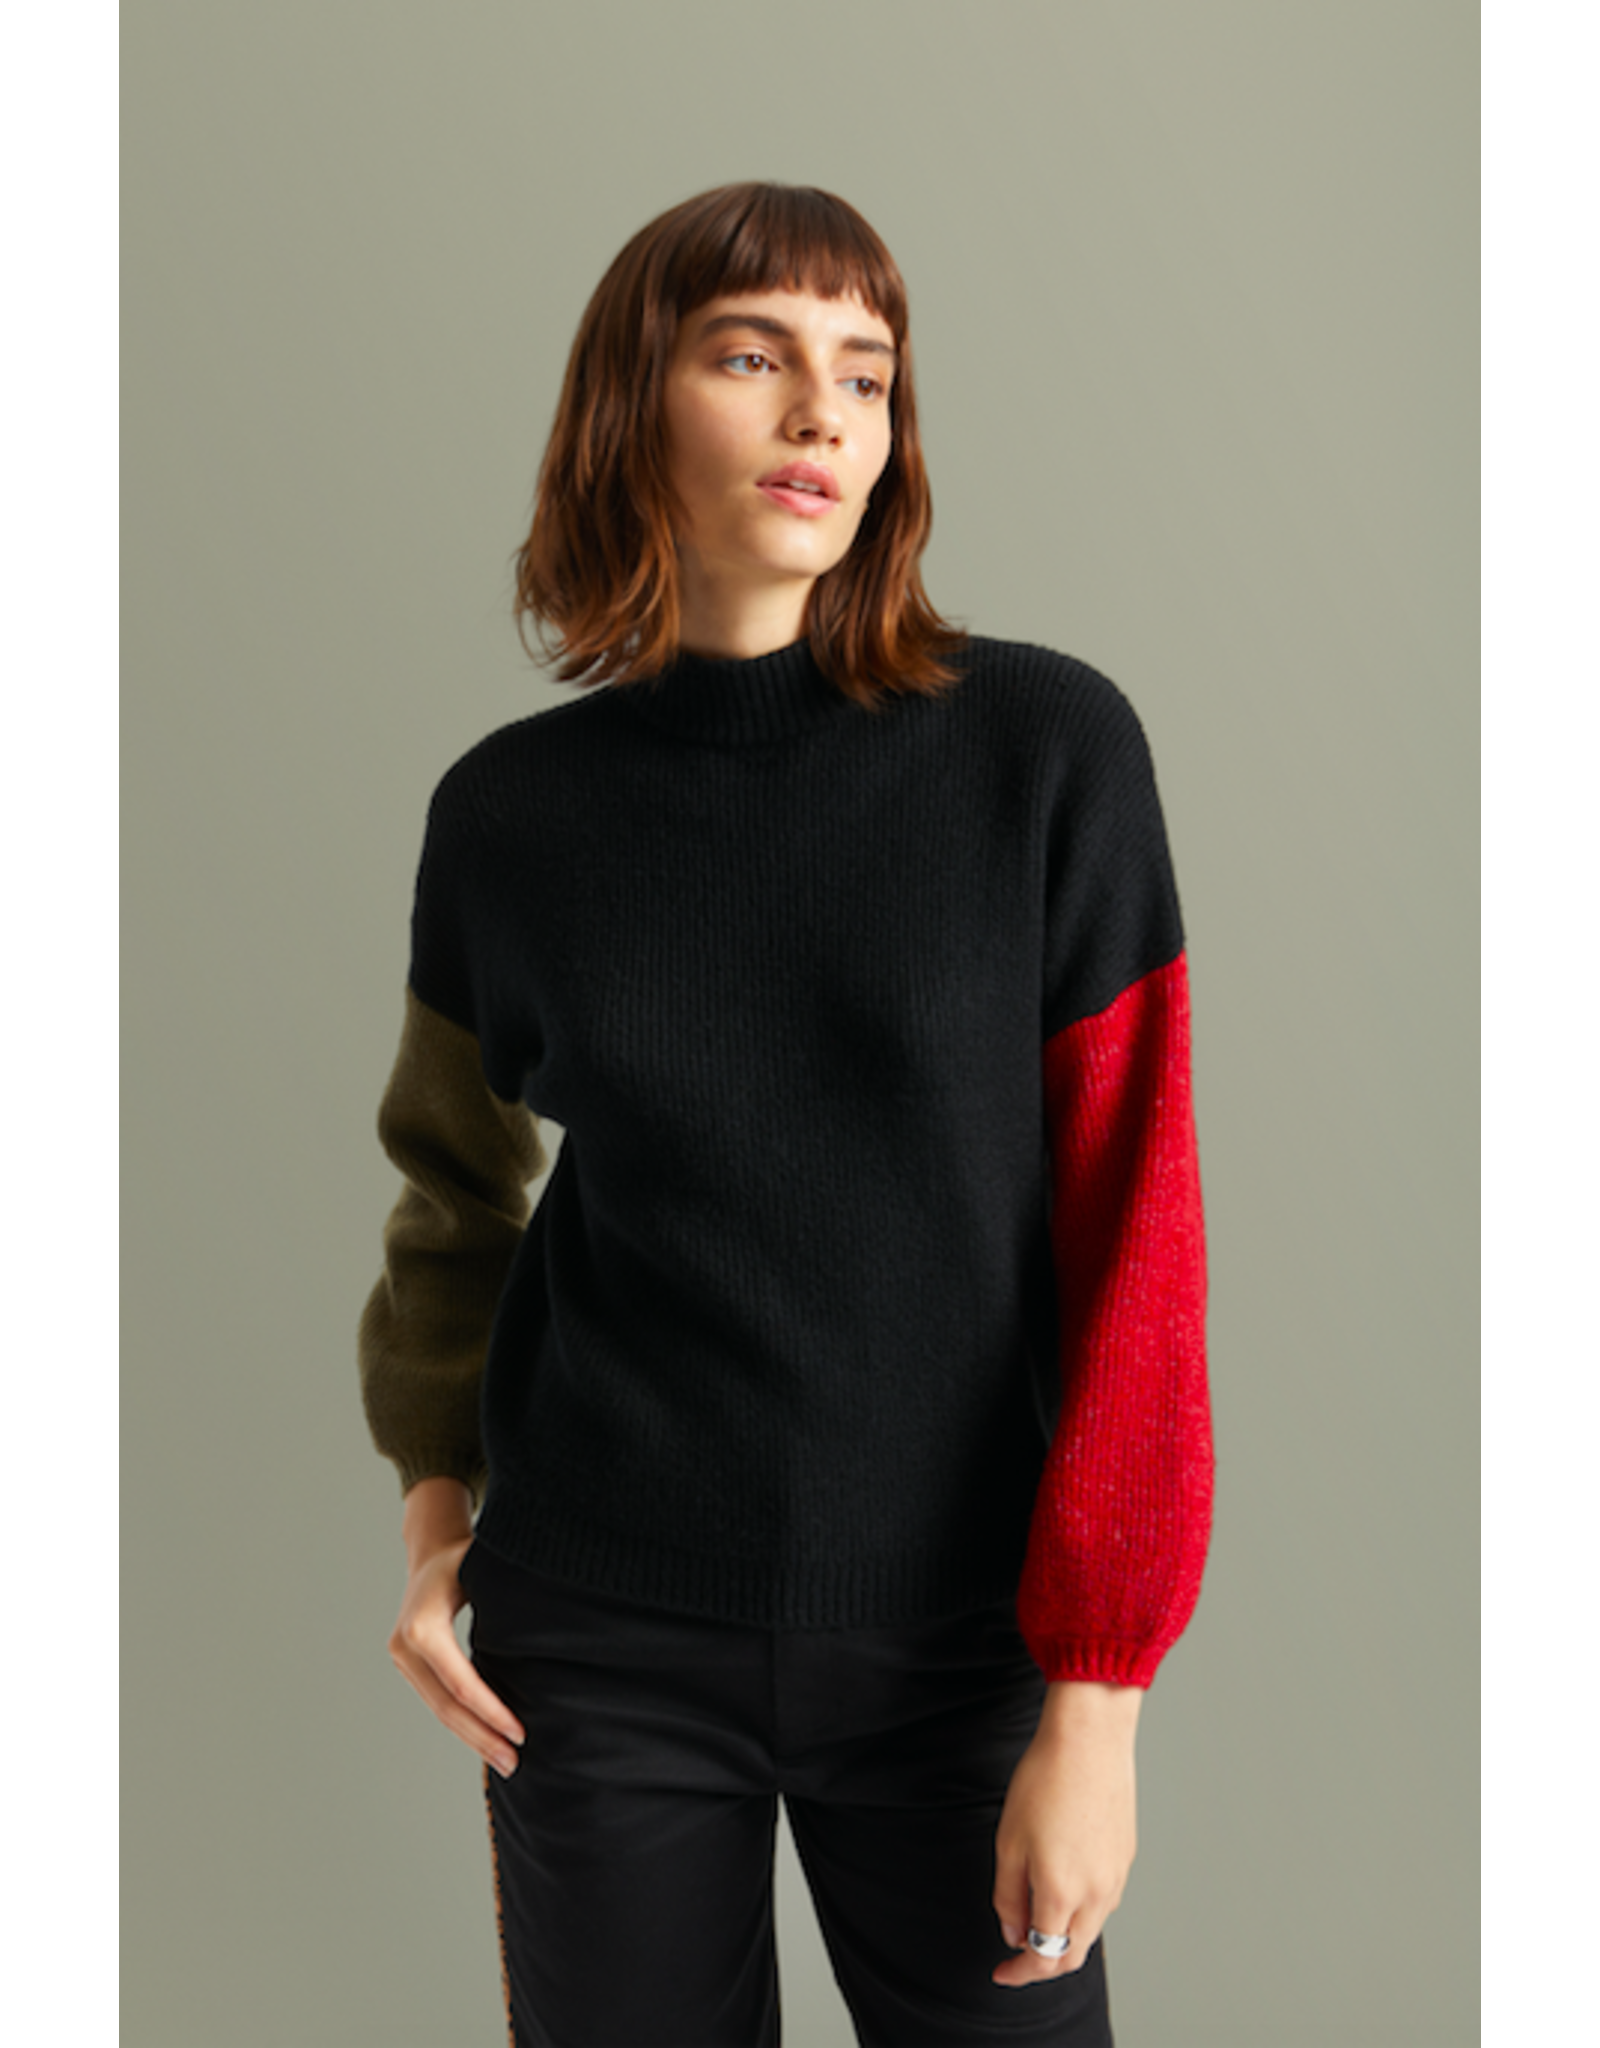 Brixton - Valleys Sweater in Chili / Olive or Heather Grey